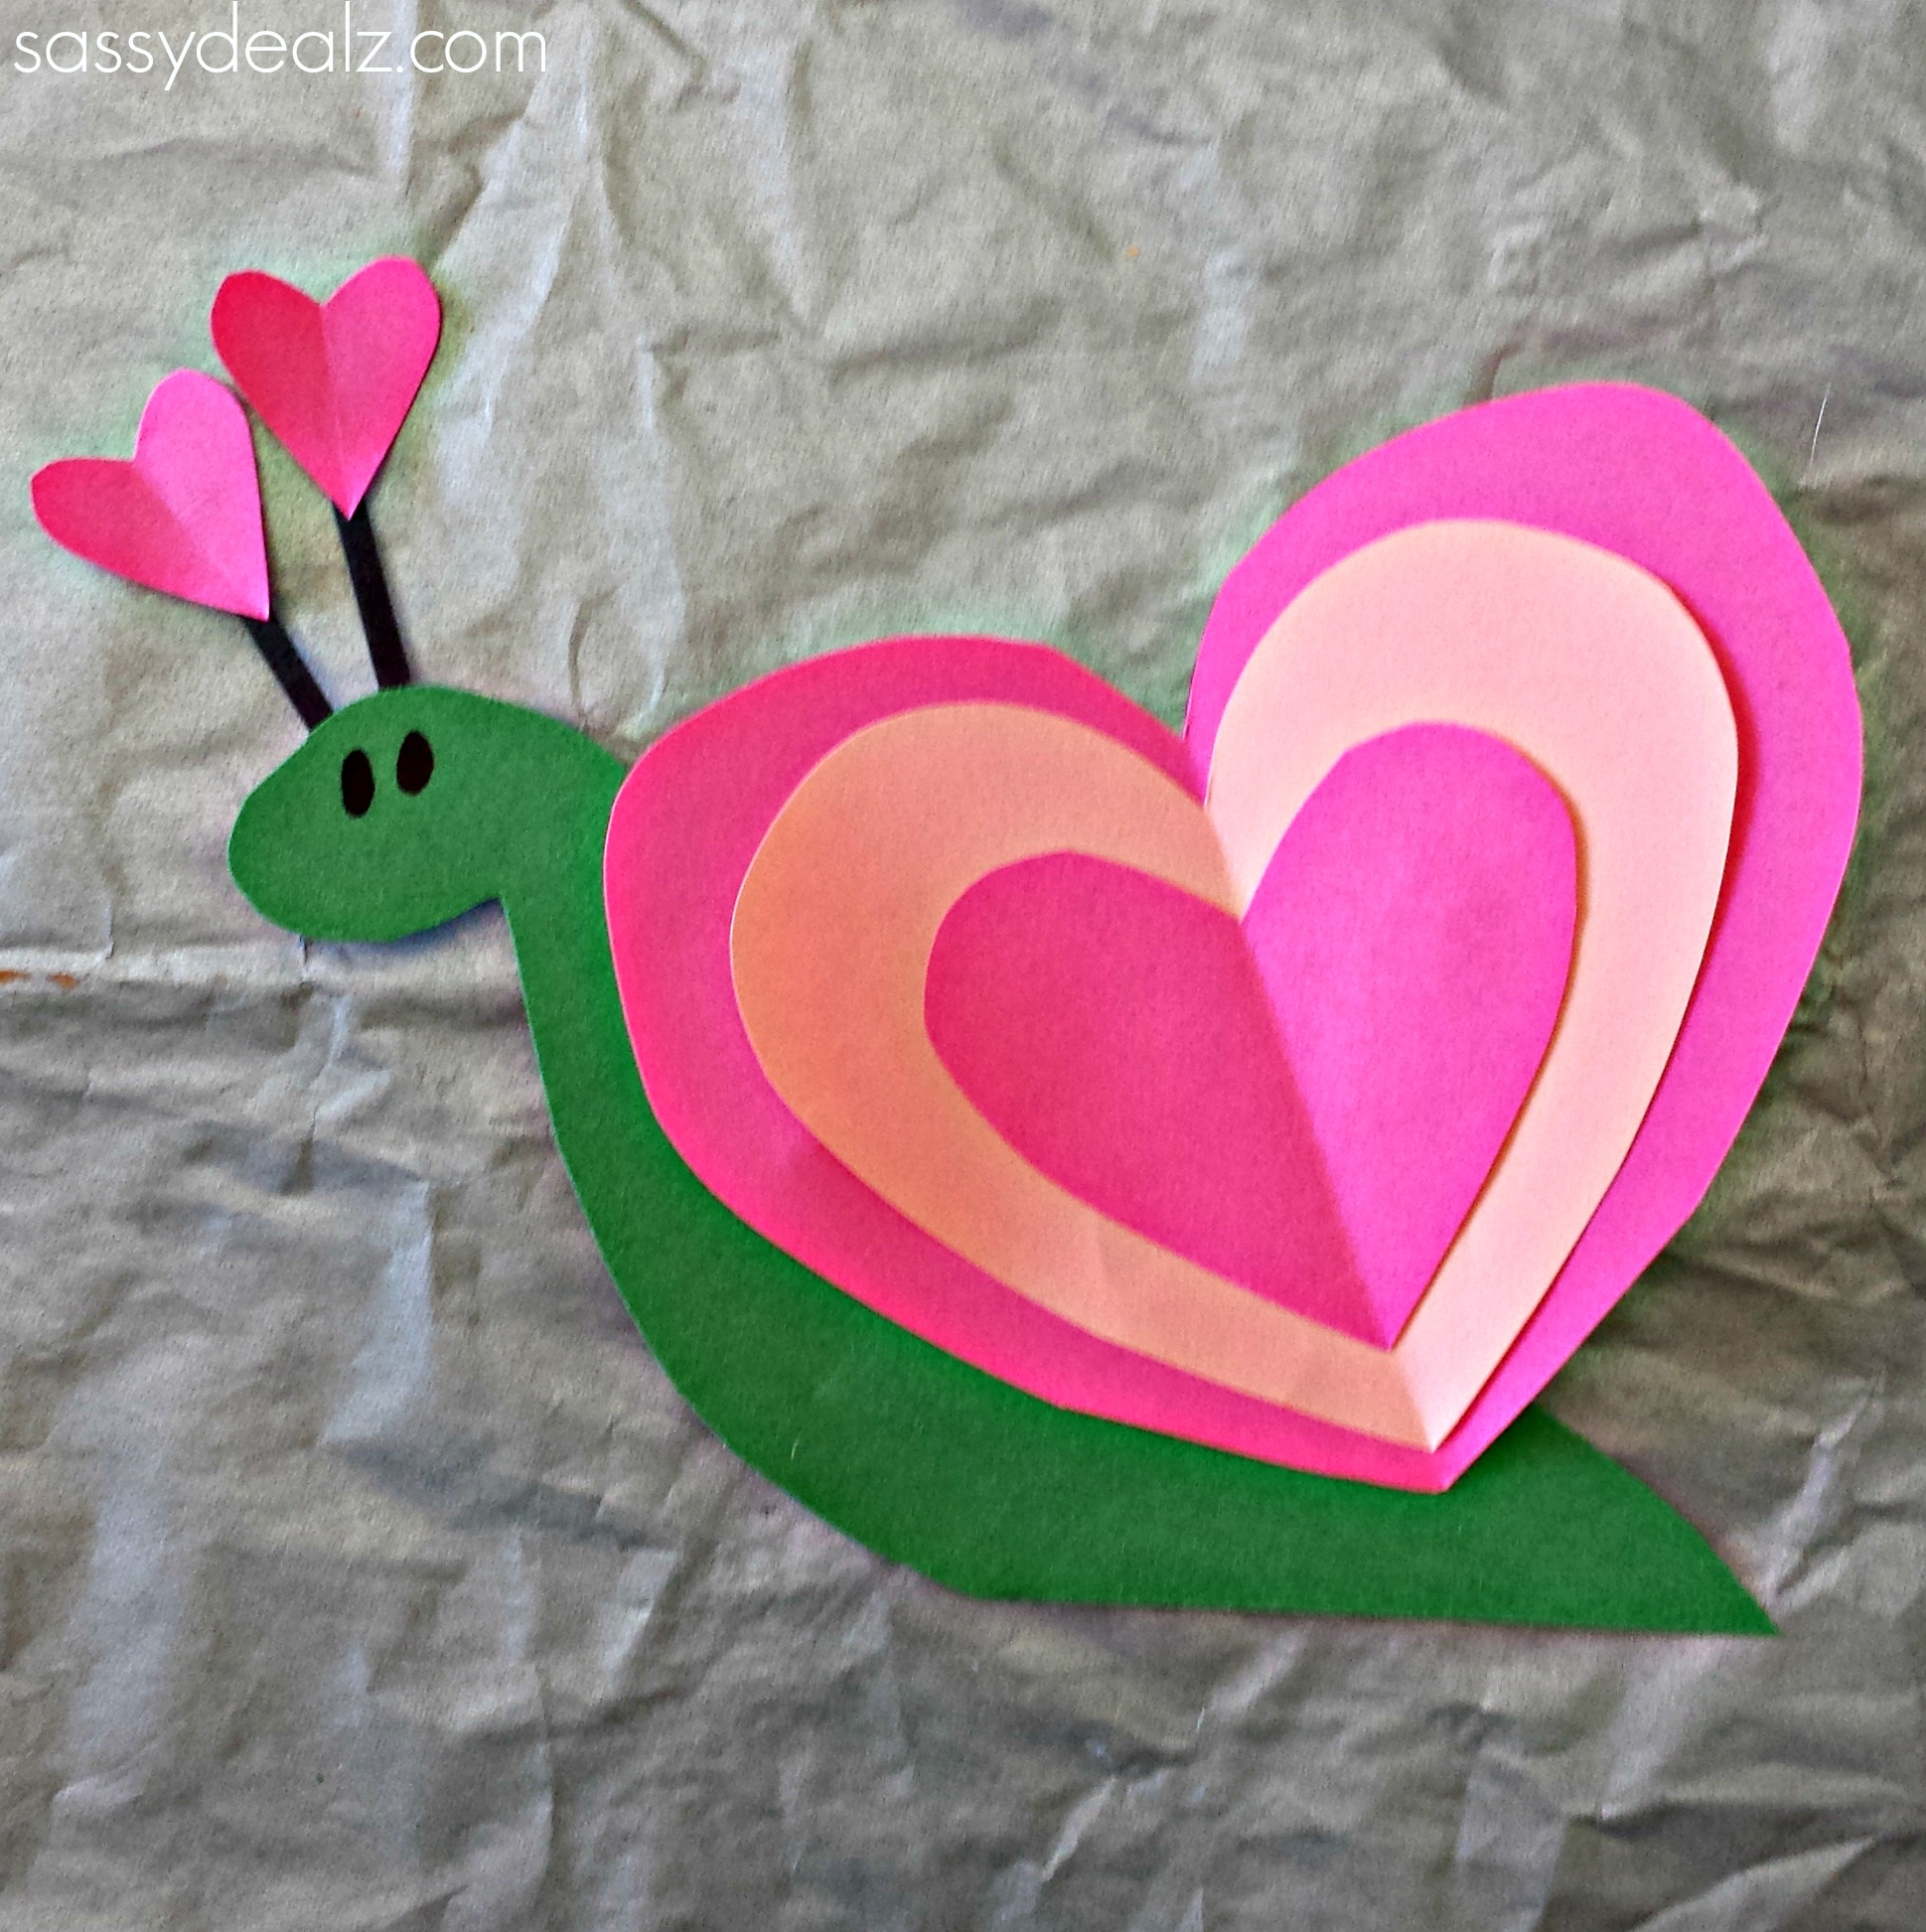 snail heart craft for kids - Valentine Day Crafts For Kids